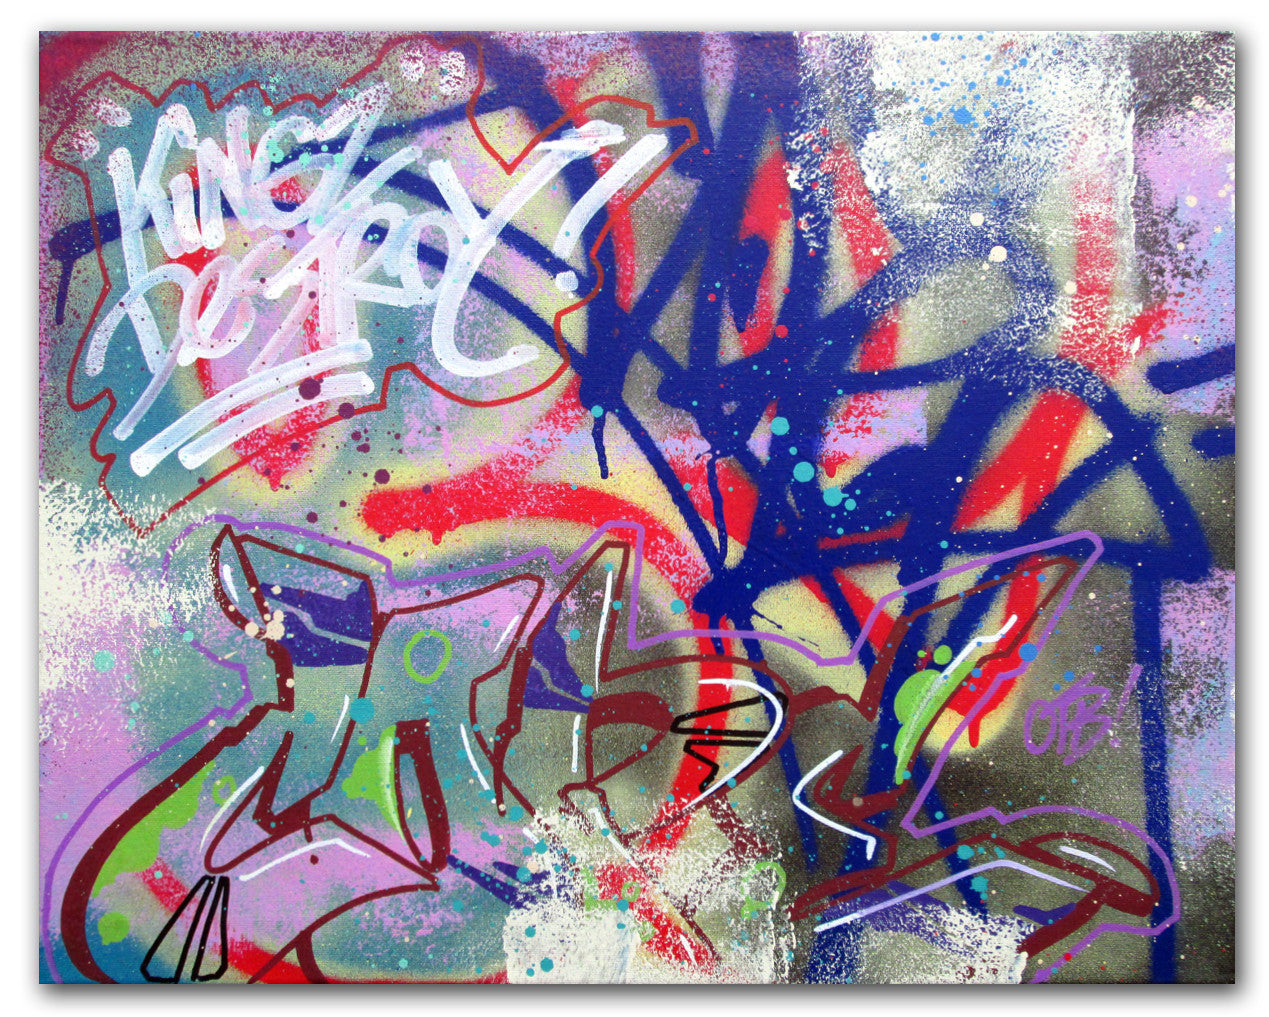 "COPE 2 - ""Kingz destroy 4"" Painting"